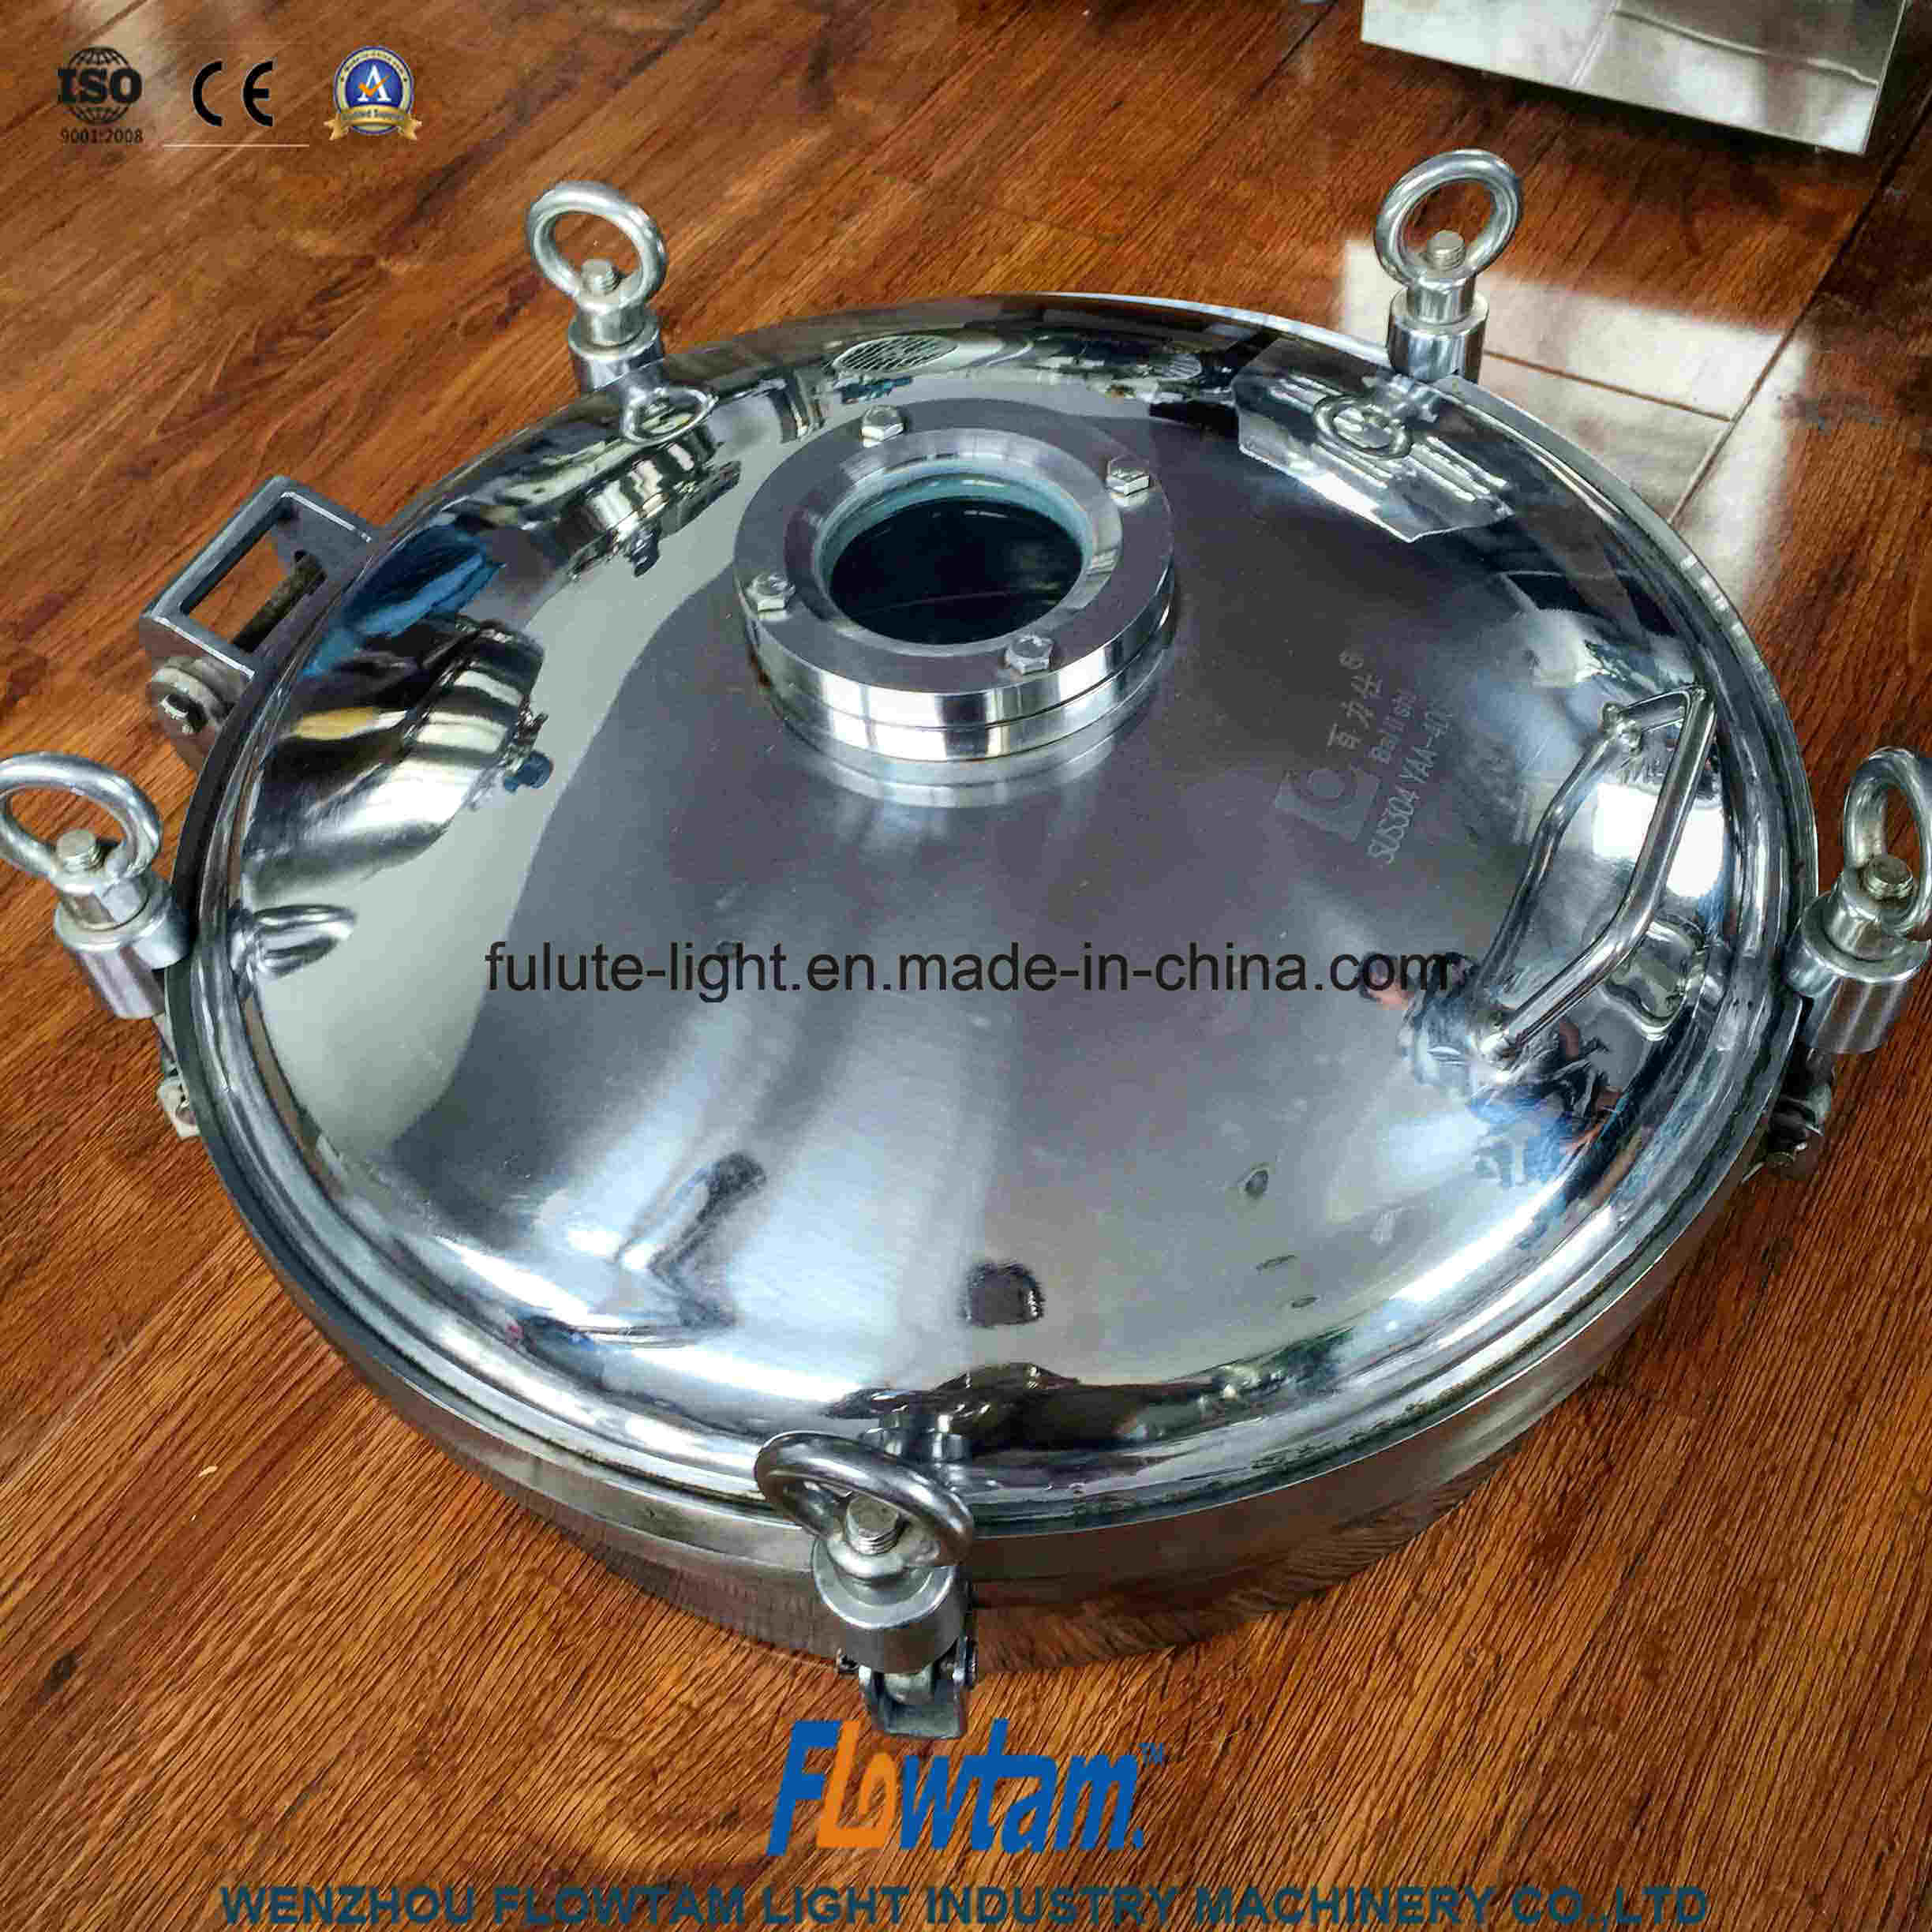 China Sanitation Inox Manhole Cover Door Manway with Flange Sight Glass - China Stainless Steel Tank Manway Food Grade Tank Manway & China Sanitation Inox Manhole Cover Door Manway with Flange Sight ... pezcame.com